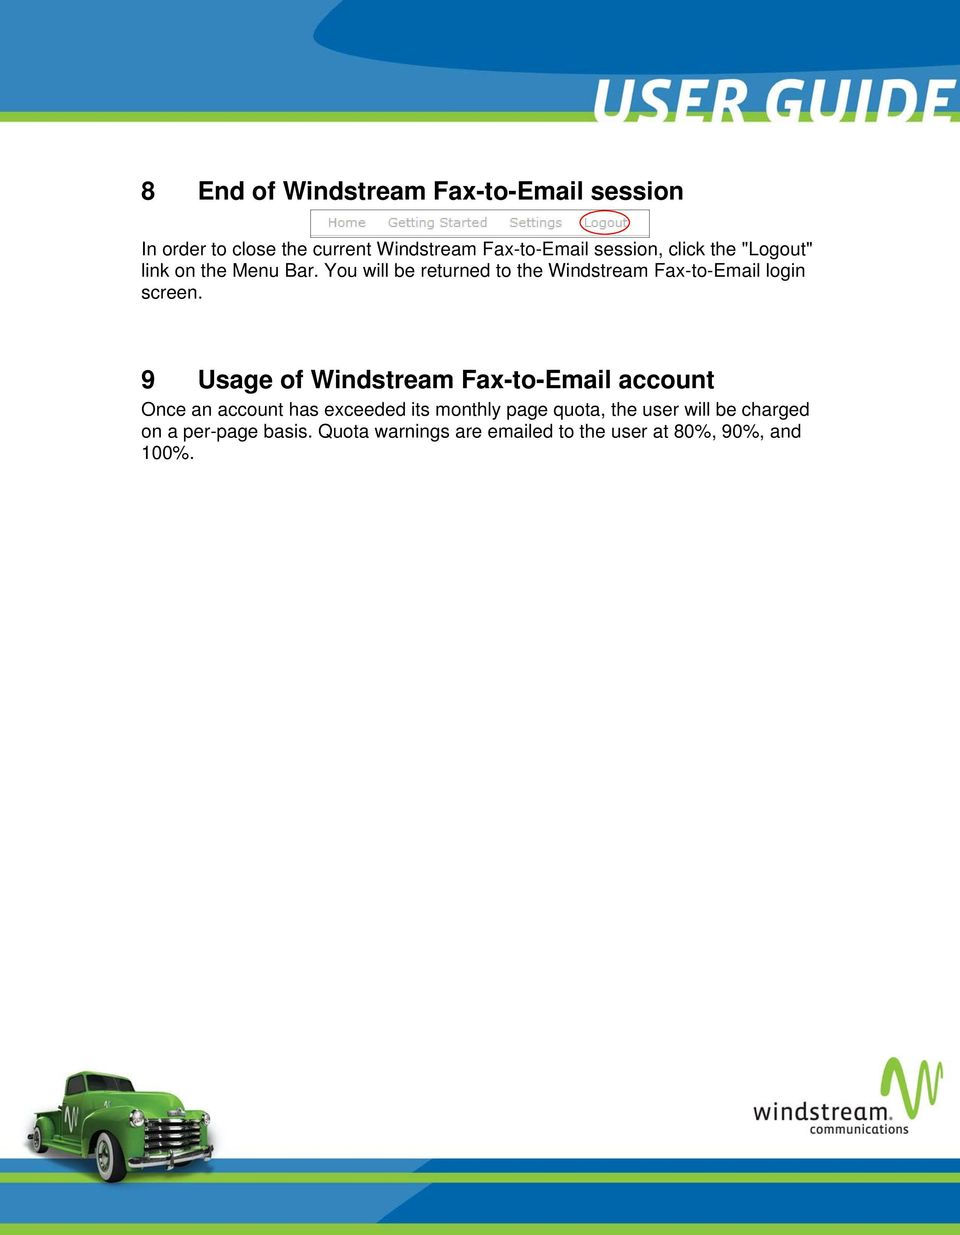 You will be returned to the Windstream Fax-to-Email login screen.